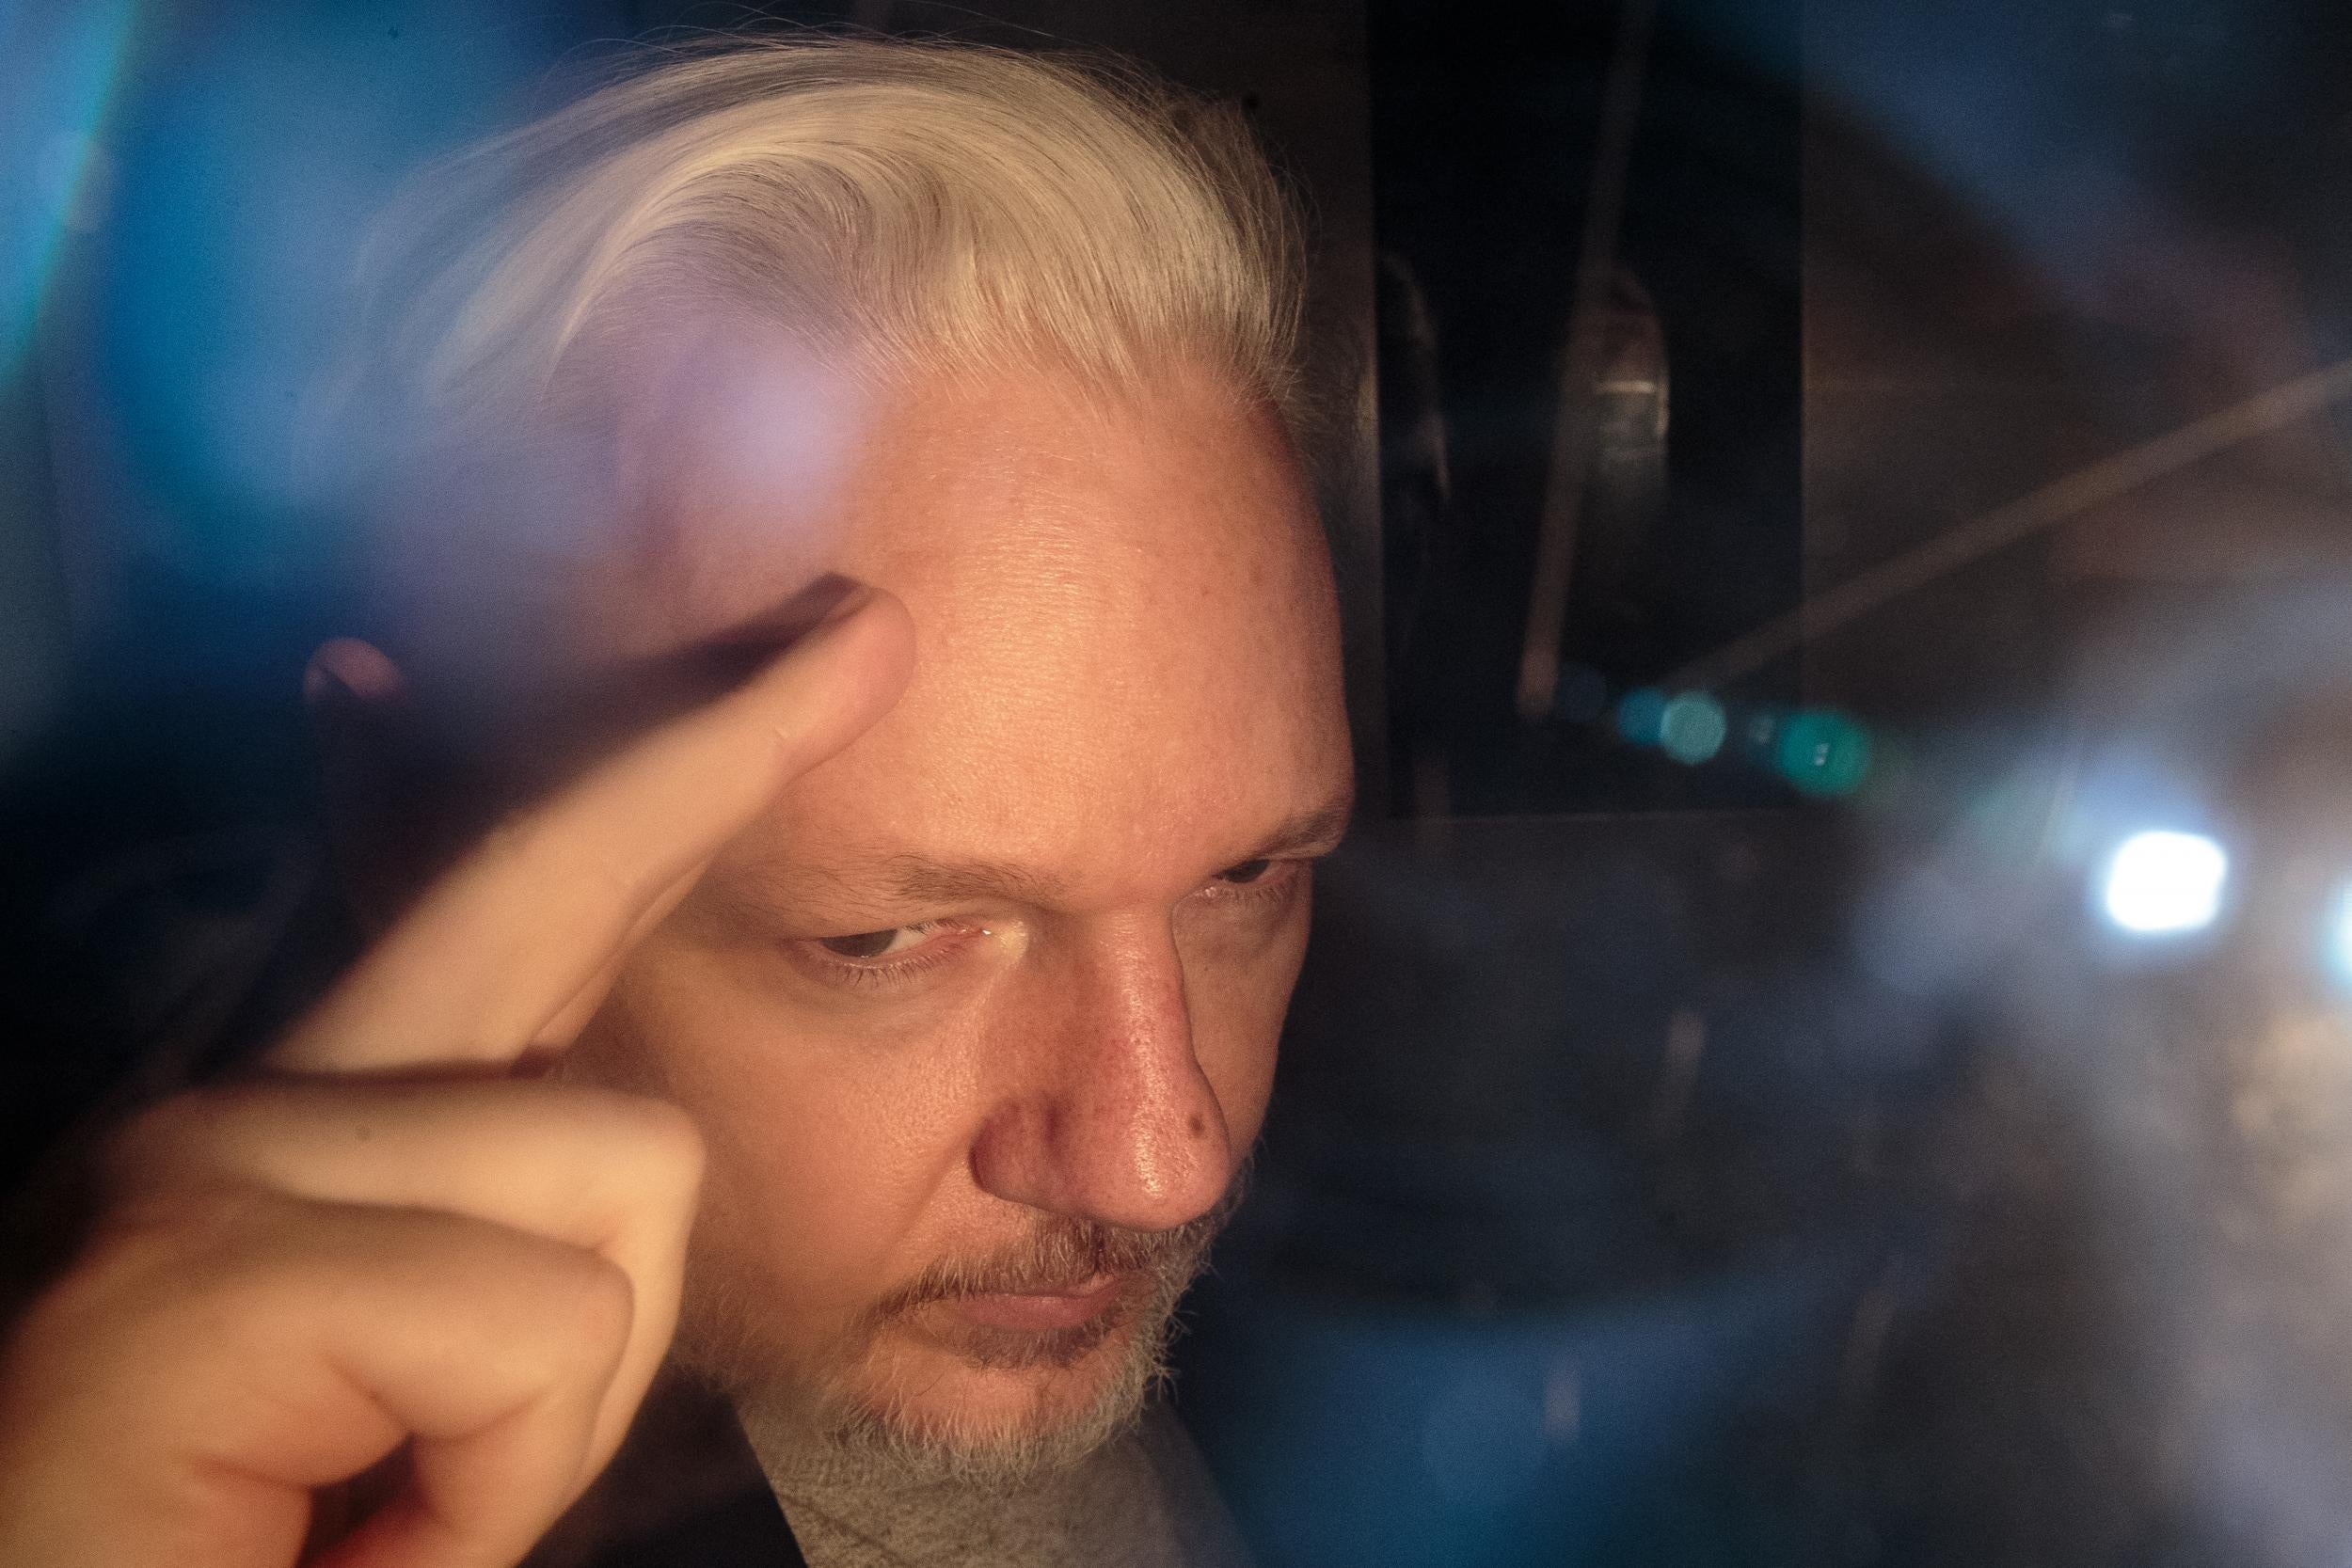 Julian Assange received deliveries and maintained control over guest list while at Ecuadorian embassy, documents reveal